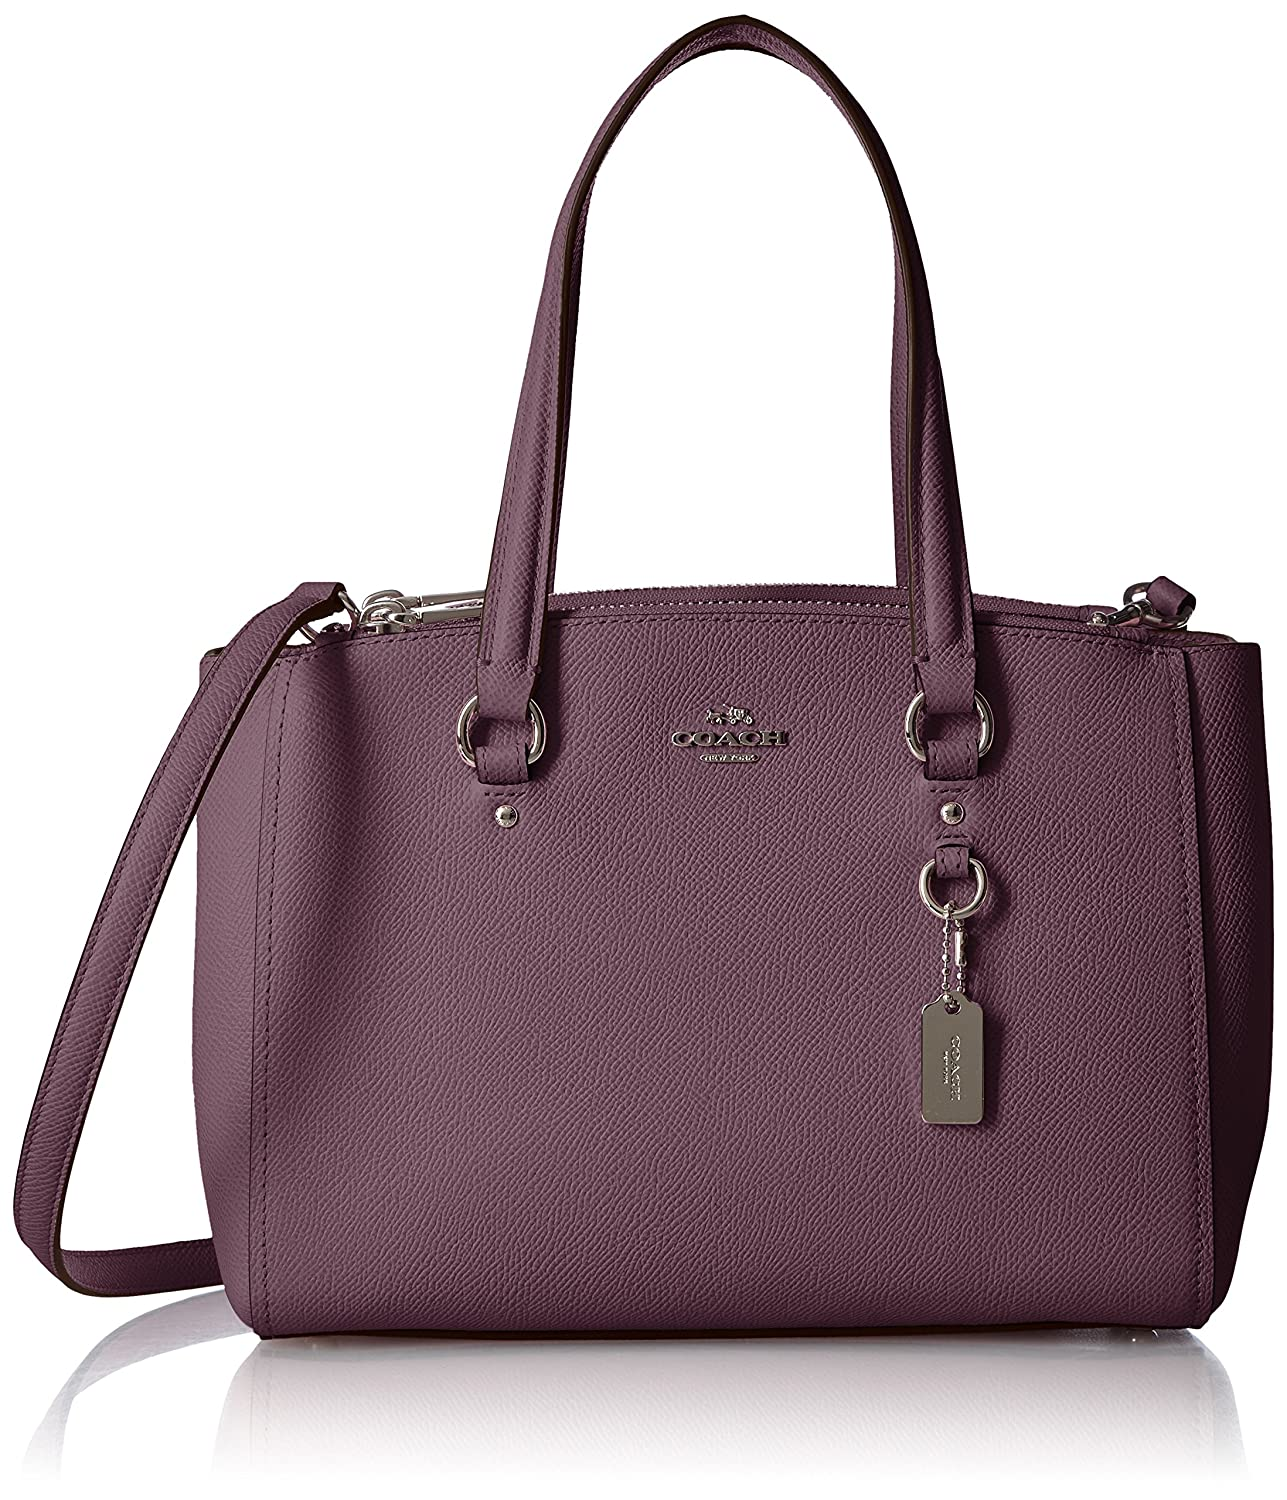 COACH Women's Crossgrain Mini Double Zip Carryall SV/Eggplant Satchel